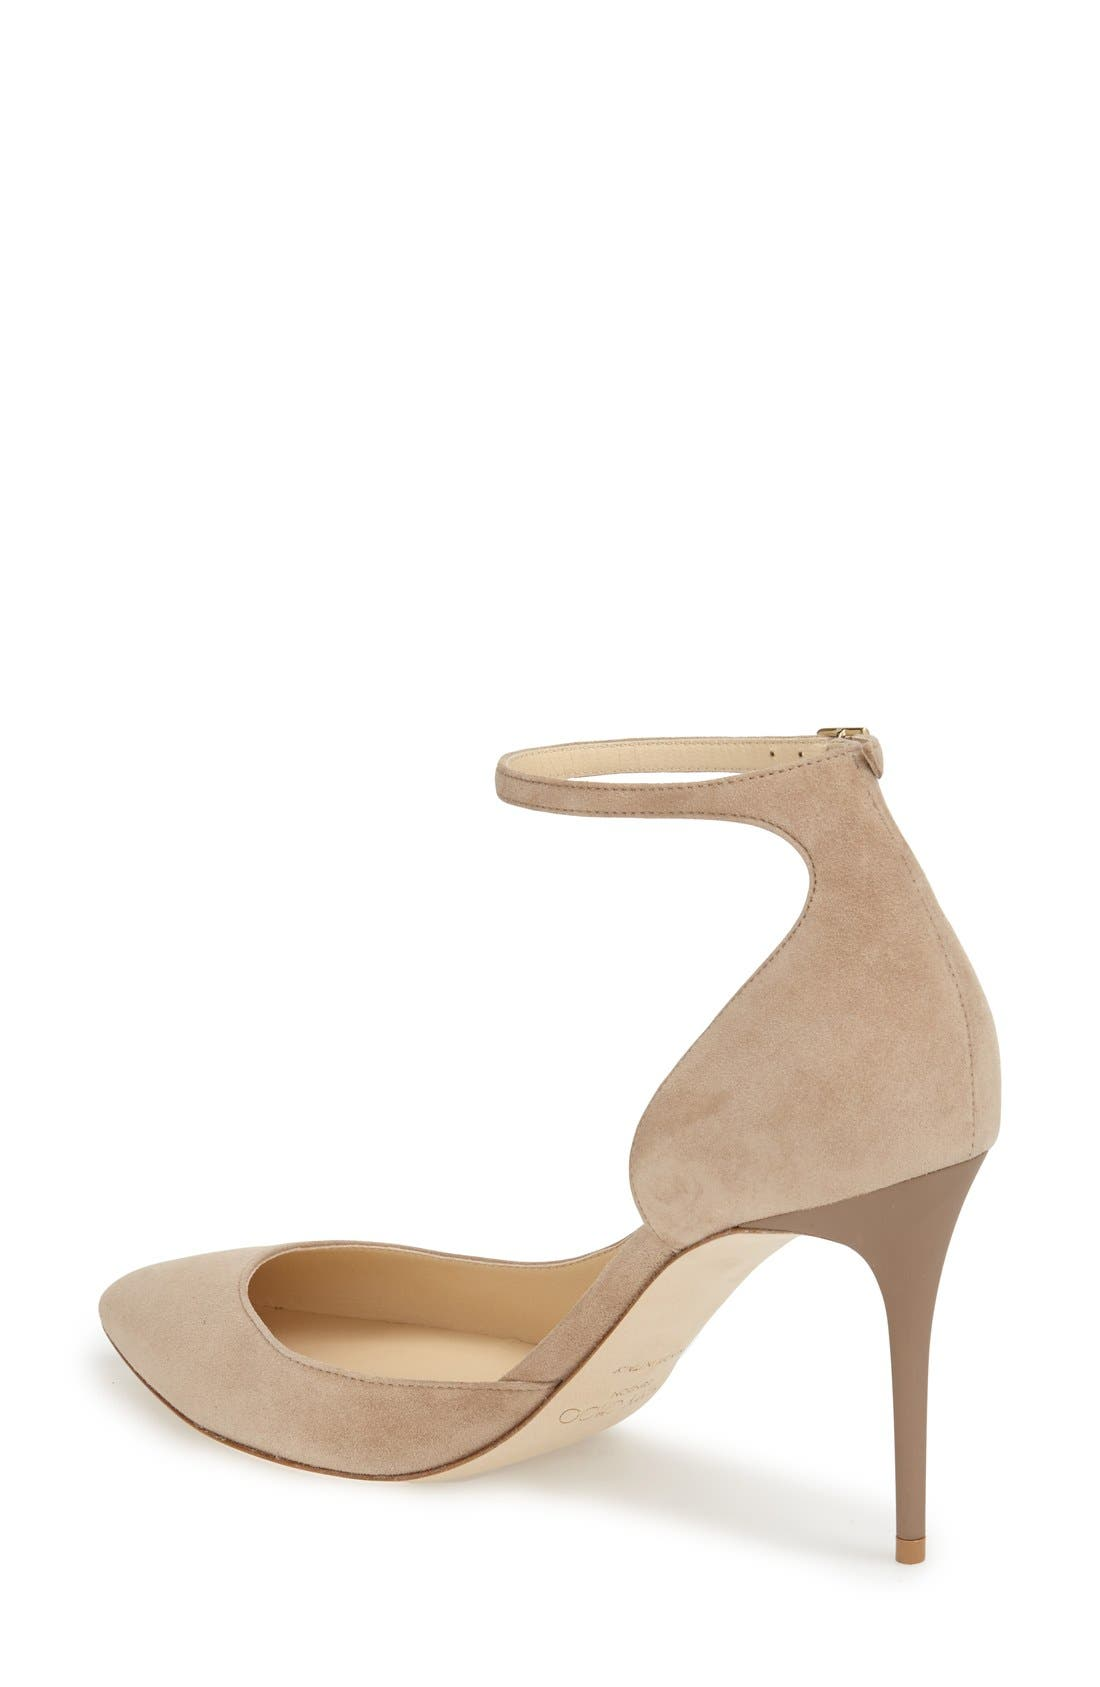 'Lucy' Half d'Orsay Pointy Toe Pump,                             Alternate thumbnail 16, color,